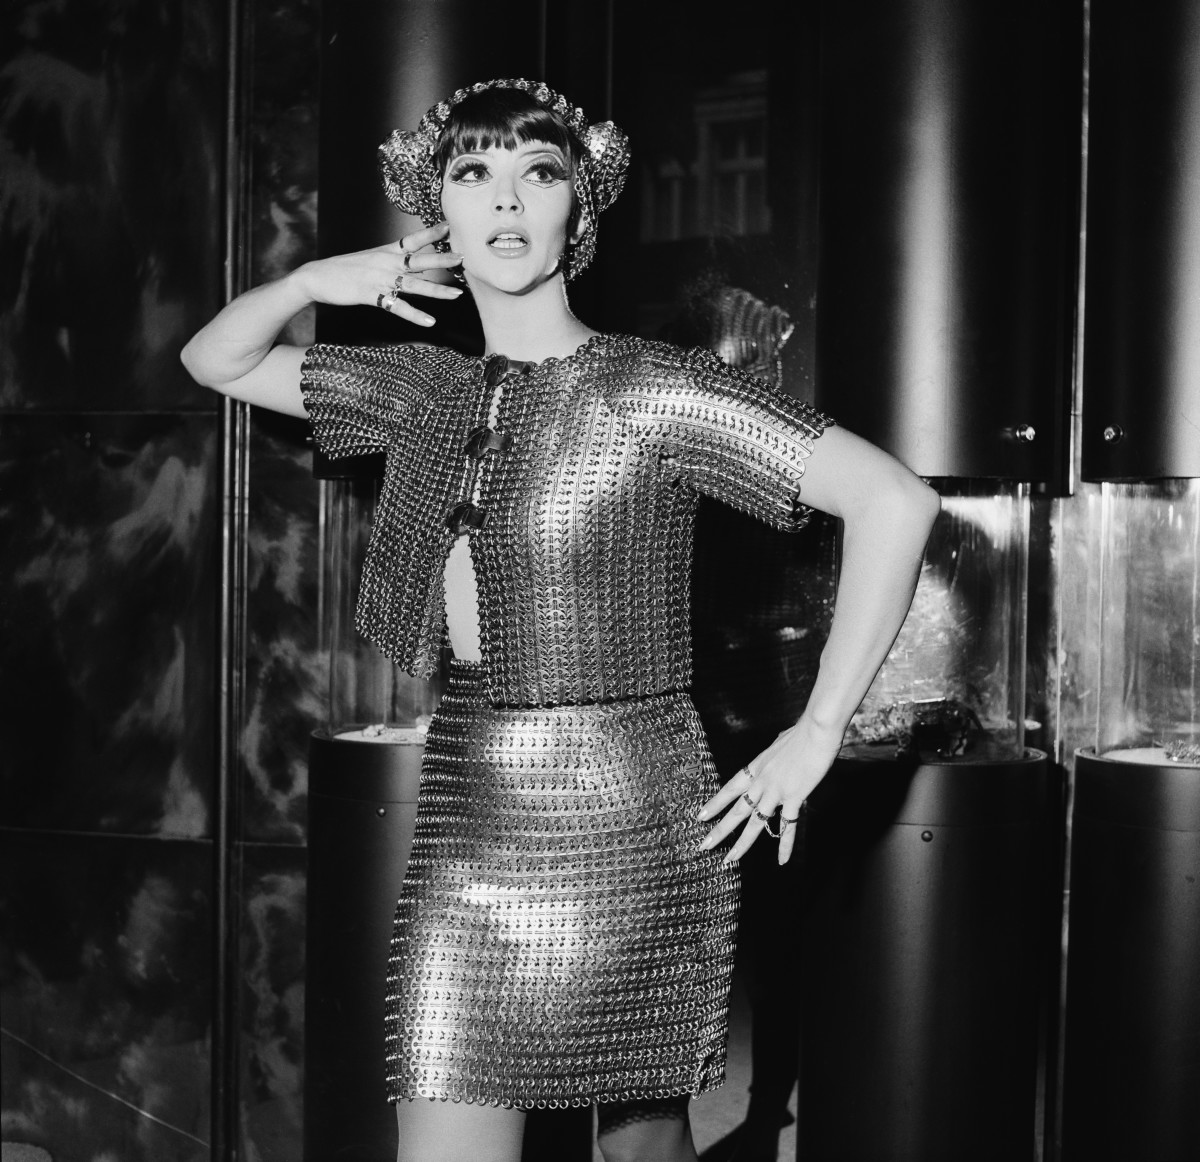 Model Jackie Bowyer wears a silver chainmail bolero with a matching miniskirt by Paco Rabanne in 1967.